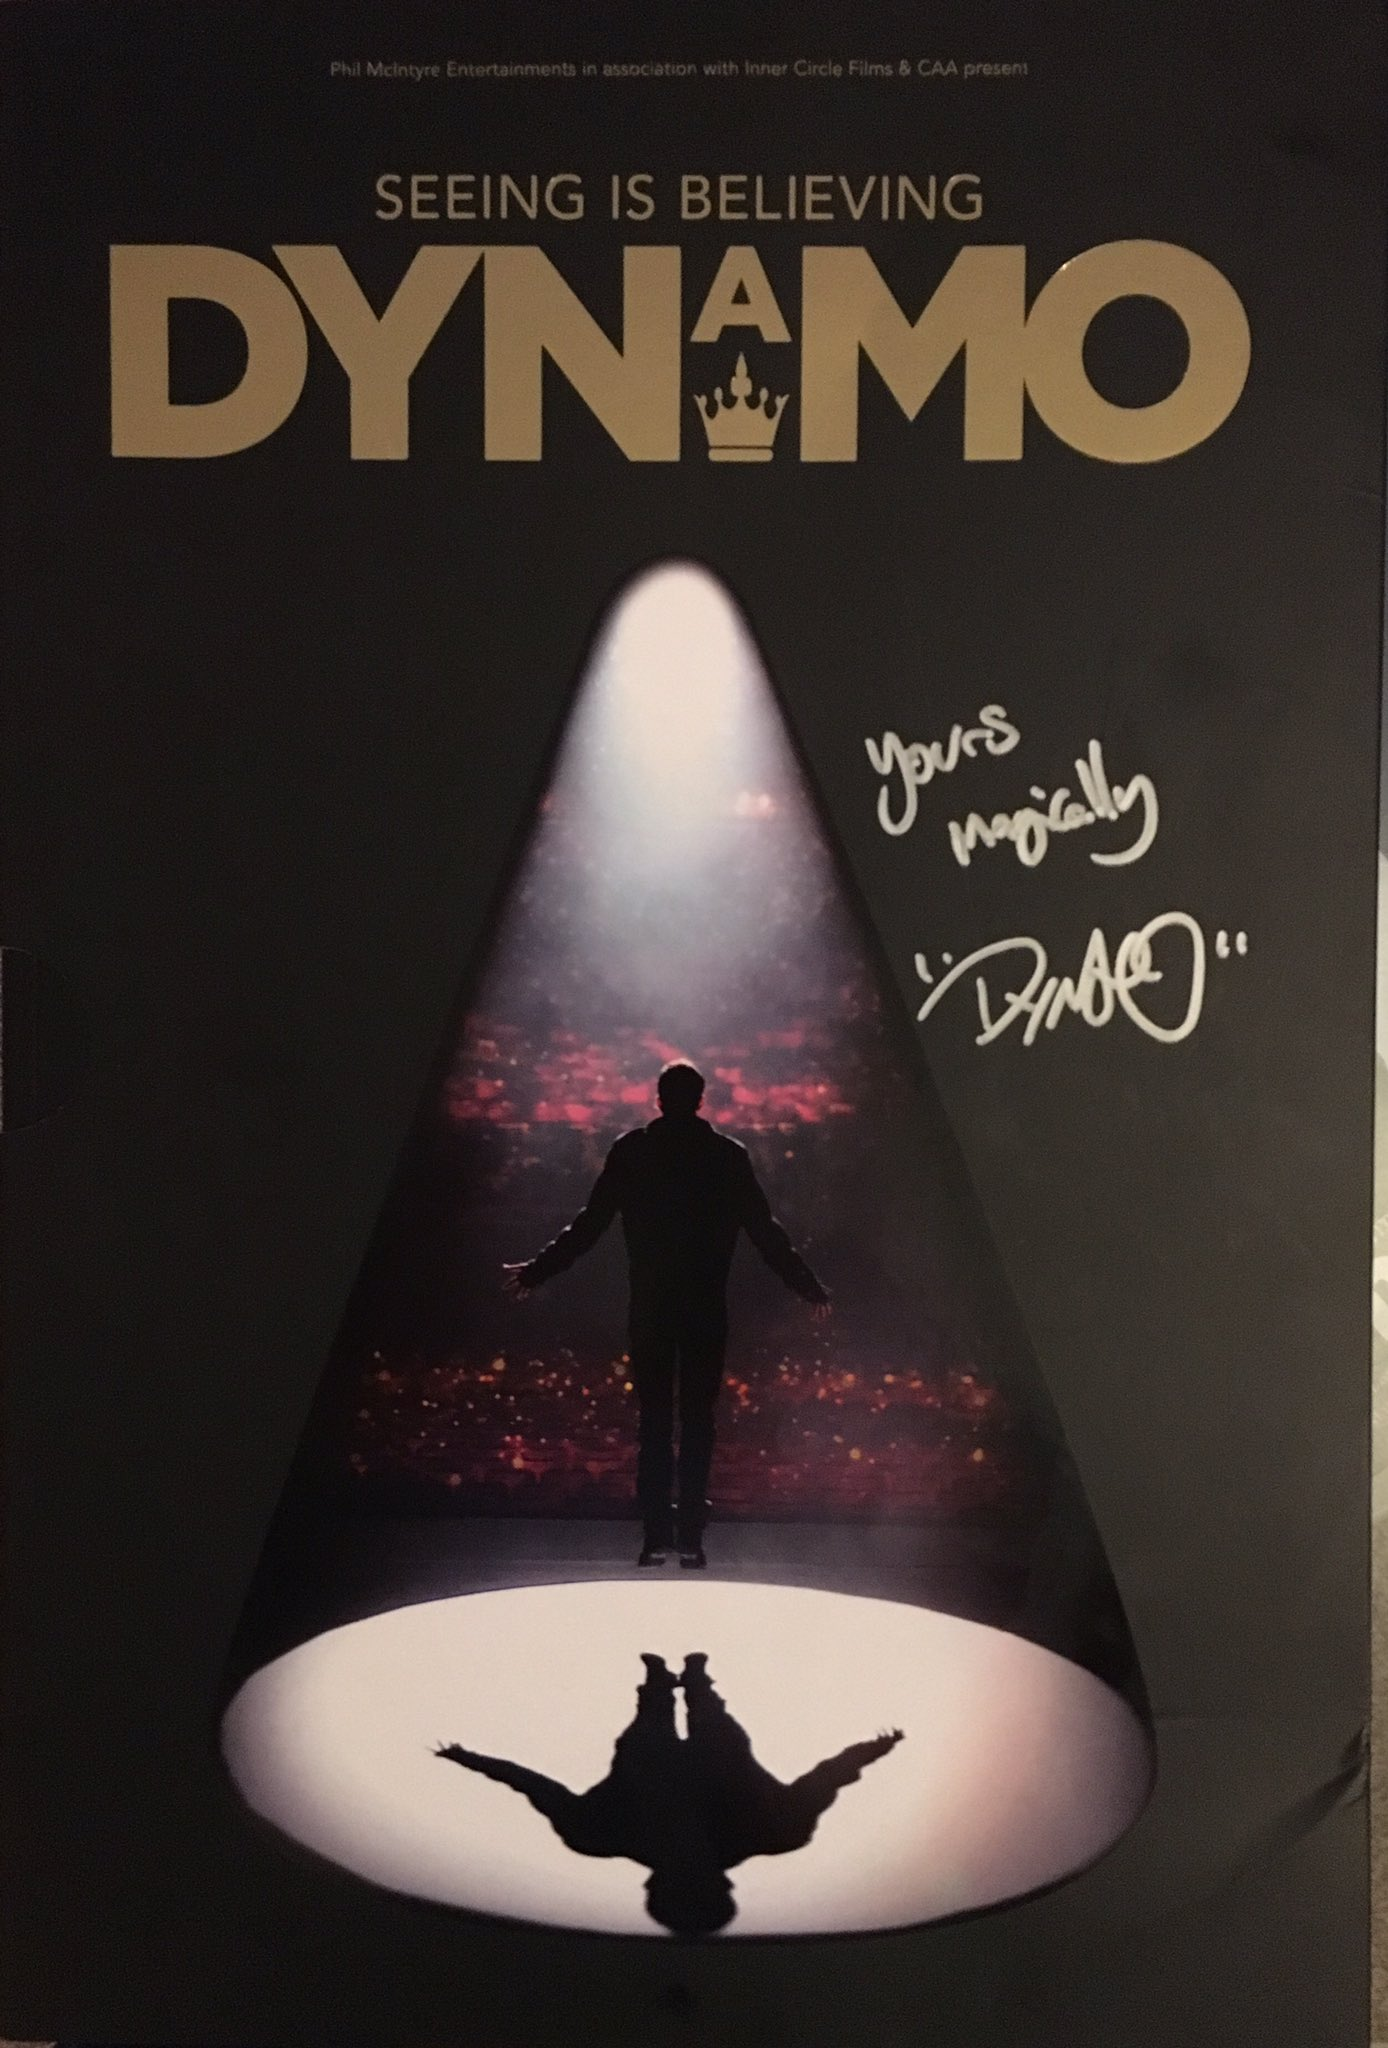 RT @Matthew2473: Unbelievable performance by @Dynamomagician at #BIC I've seen, I believe! #magic https://t.co/mYmKXaK10T